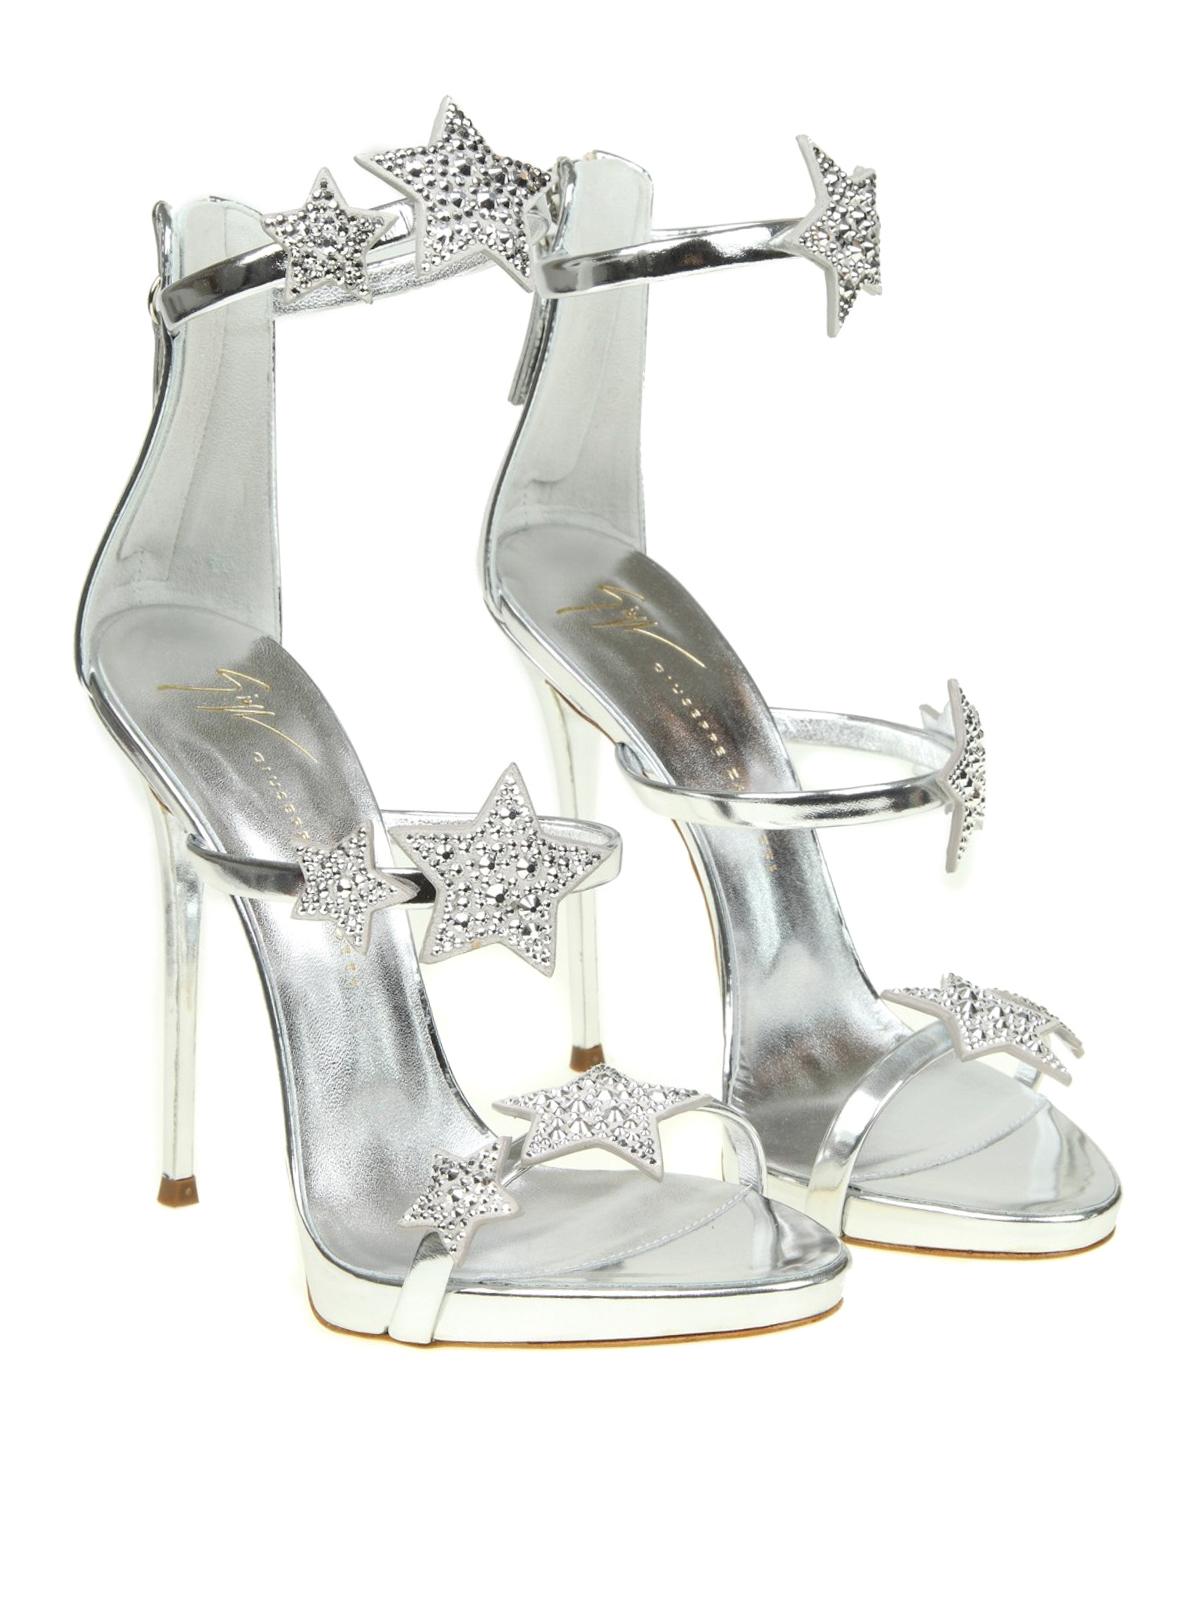 Harmony Star silver patent sandals